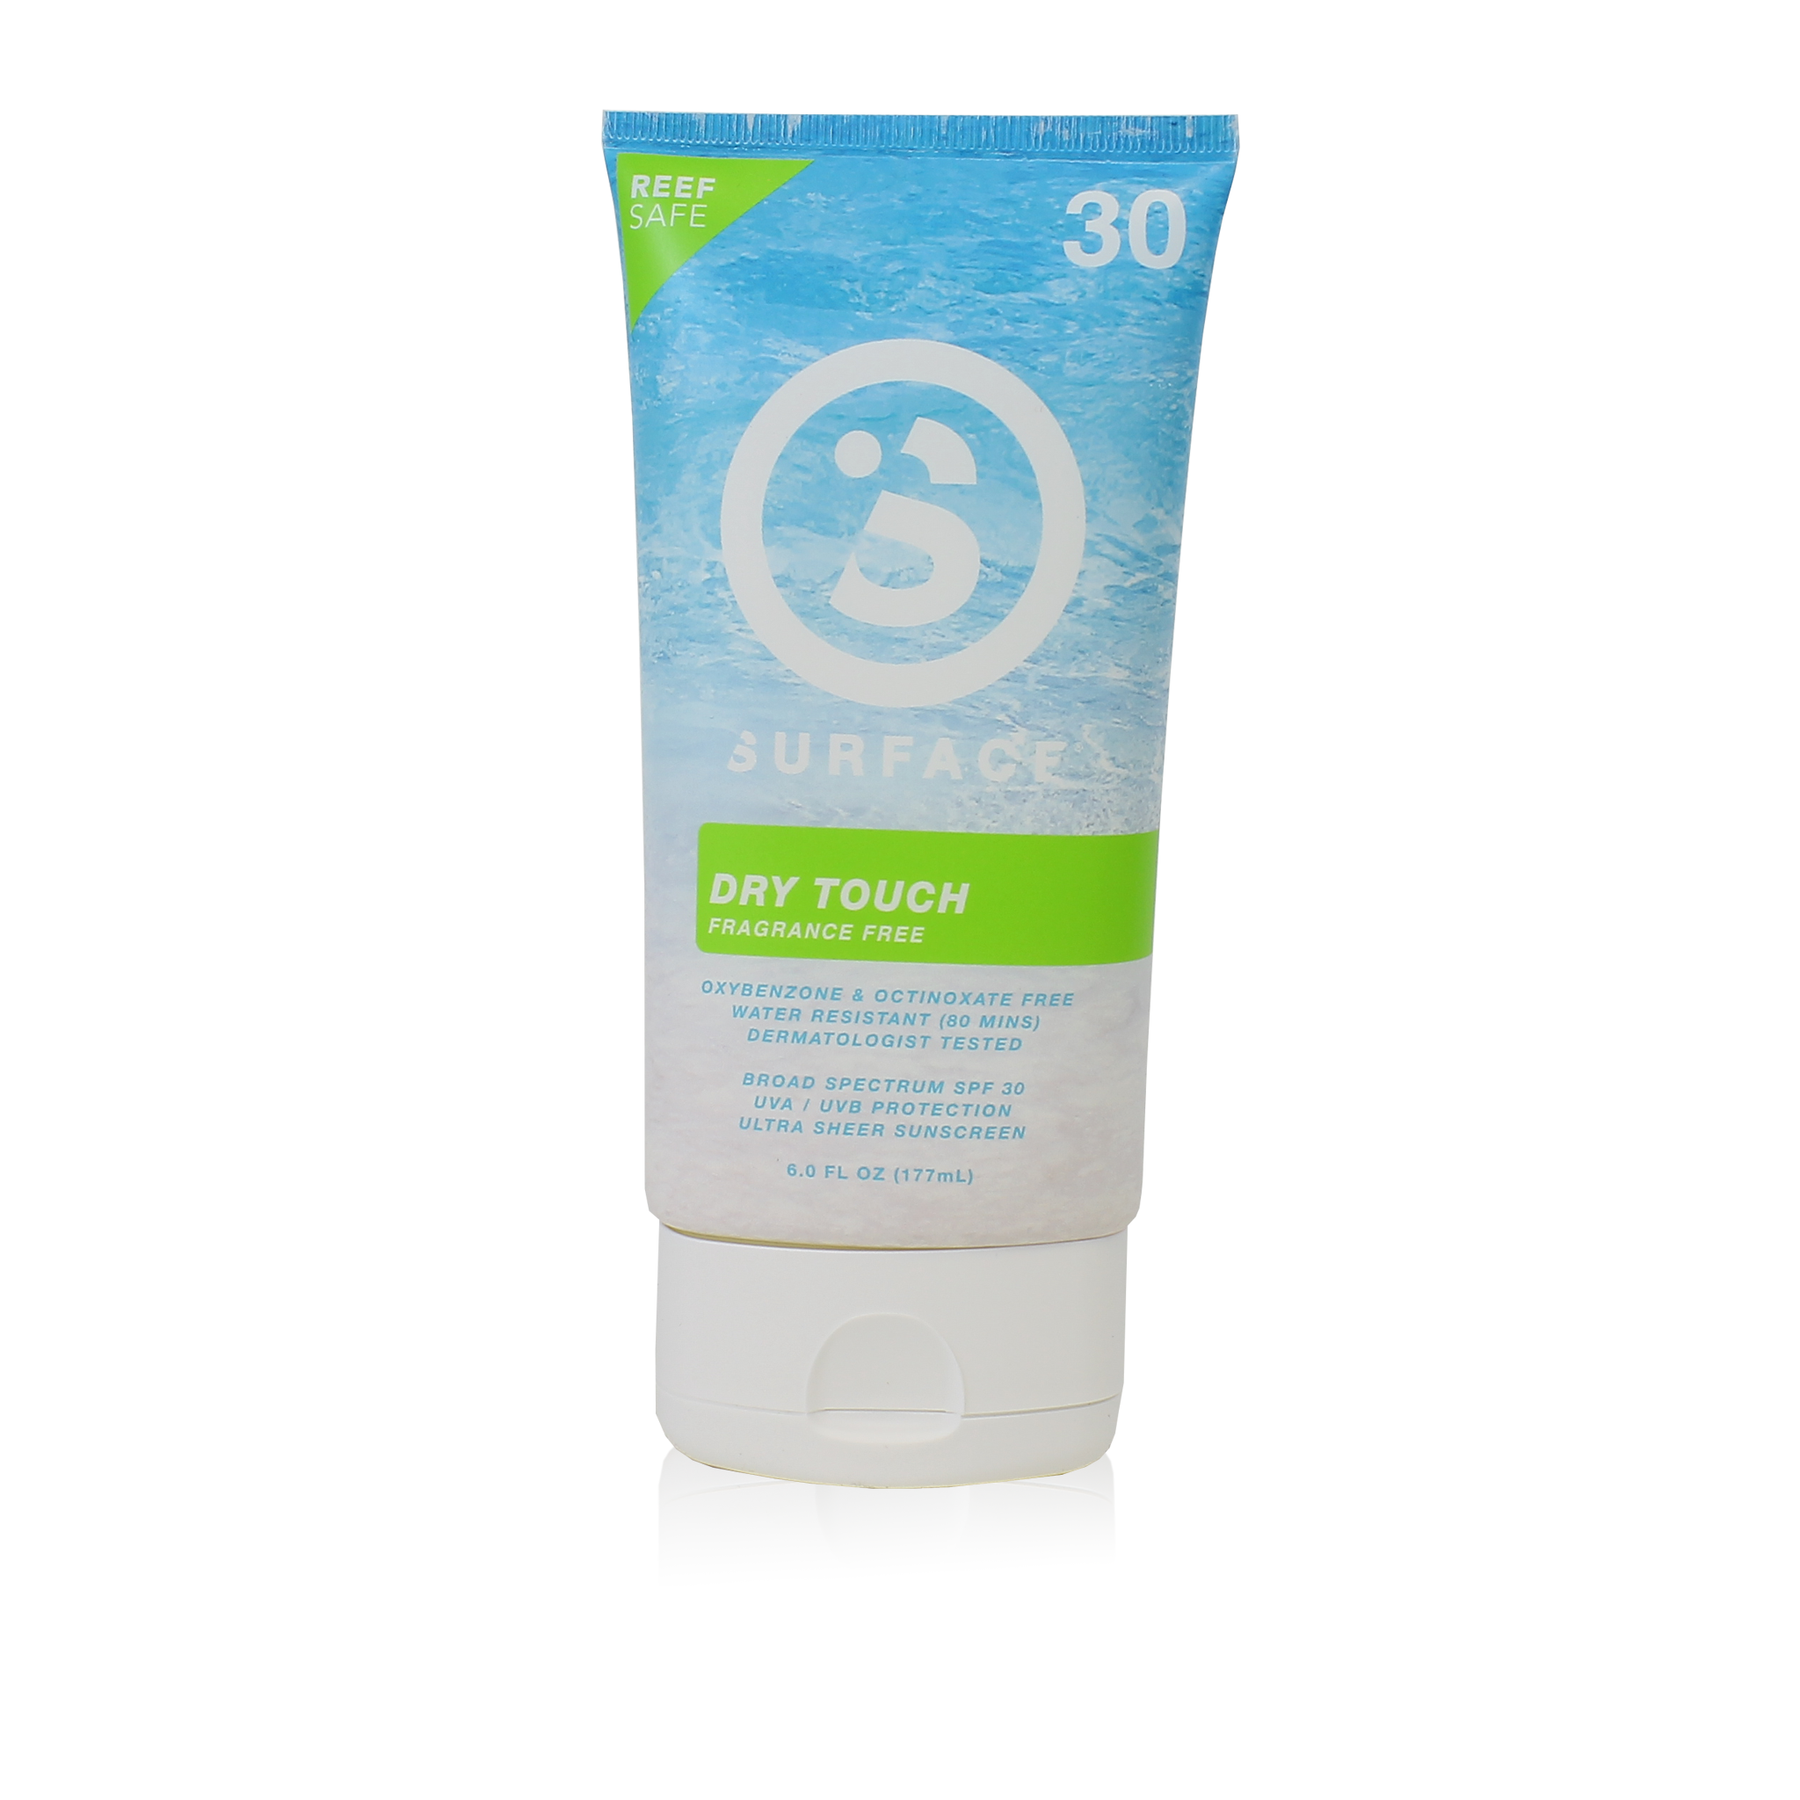 SURFACE SUNSCREEN Surface Dry Touch Lotion - Spf30 - 6Oz